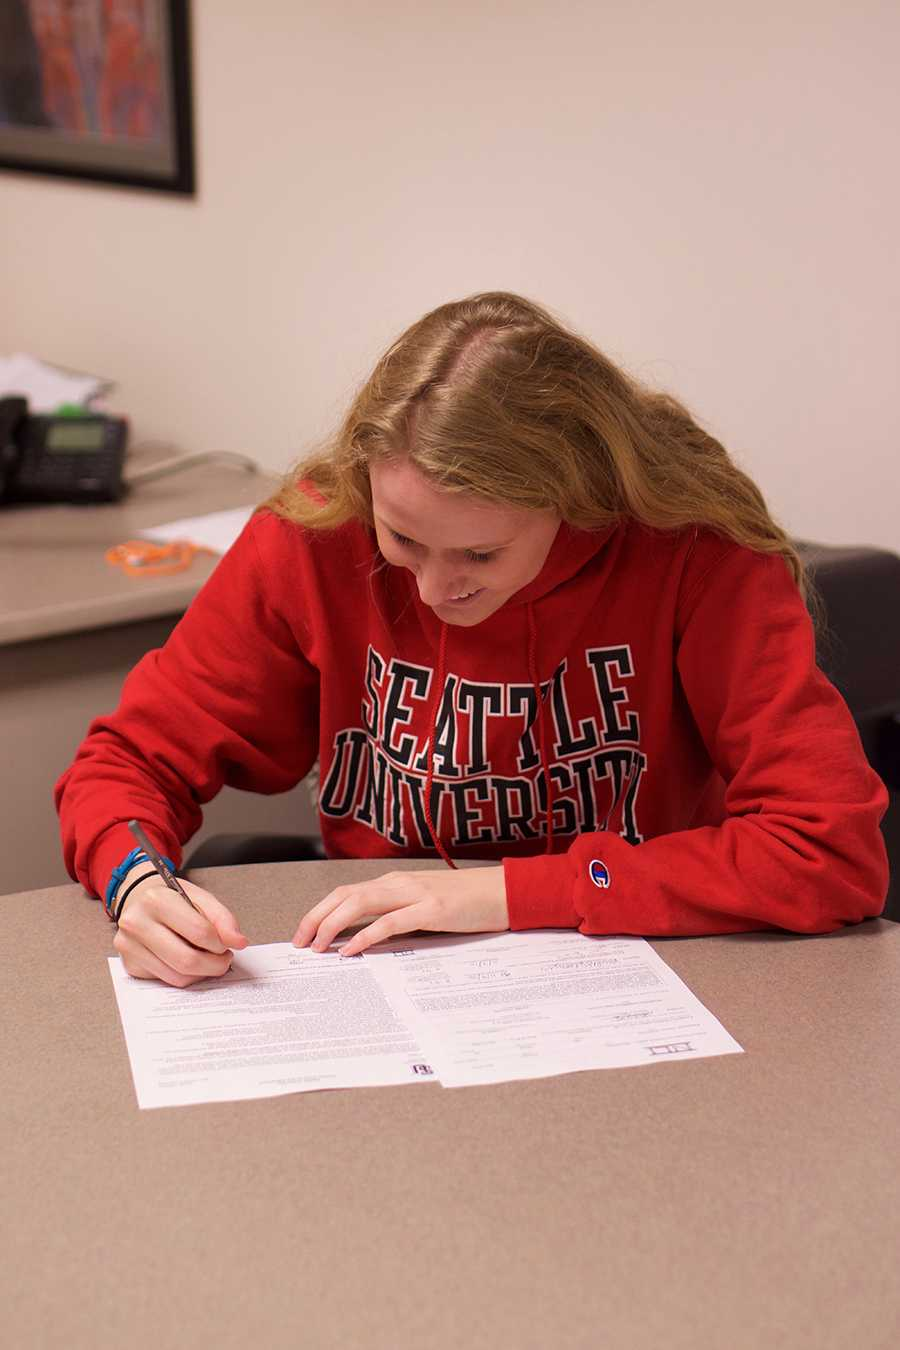 Senior Kailey DeLozier signs her commitment to Seattle University for Division 1 swimming. She signed the contract Nov. 9.